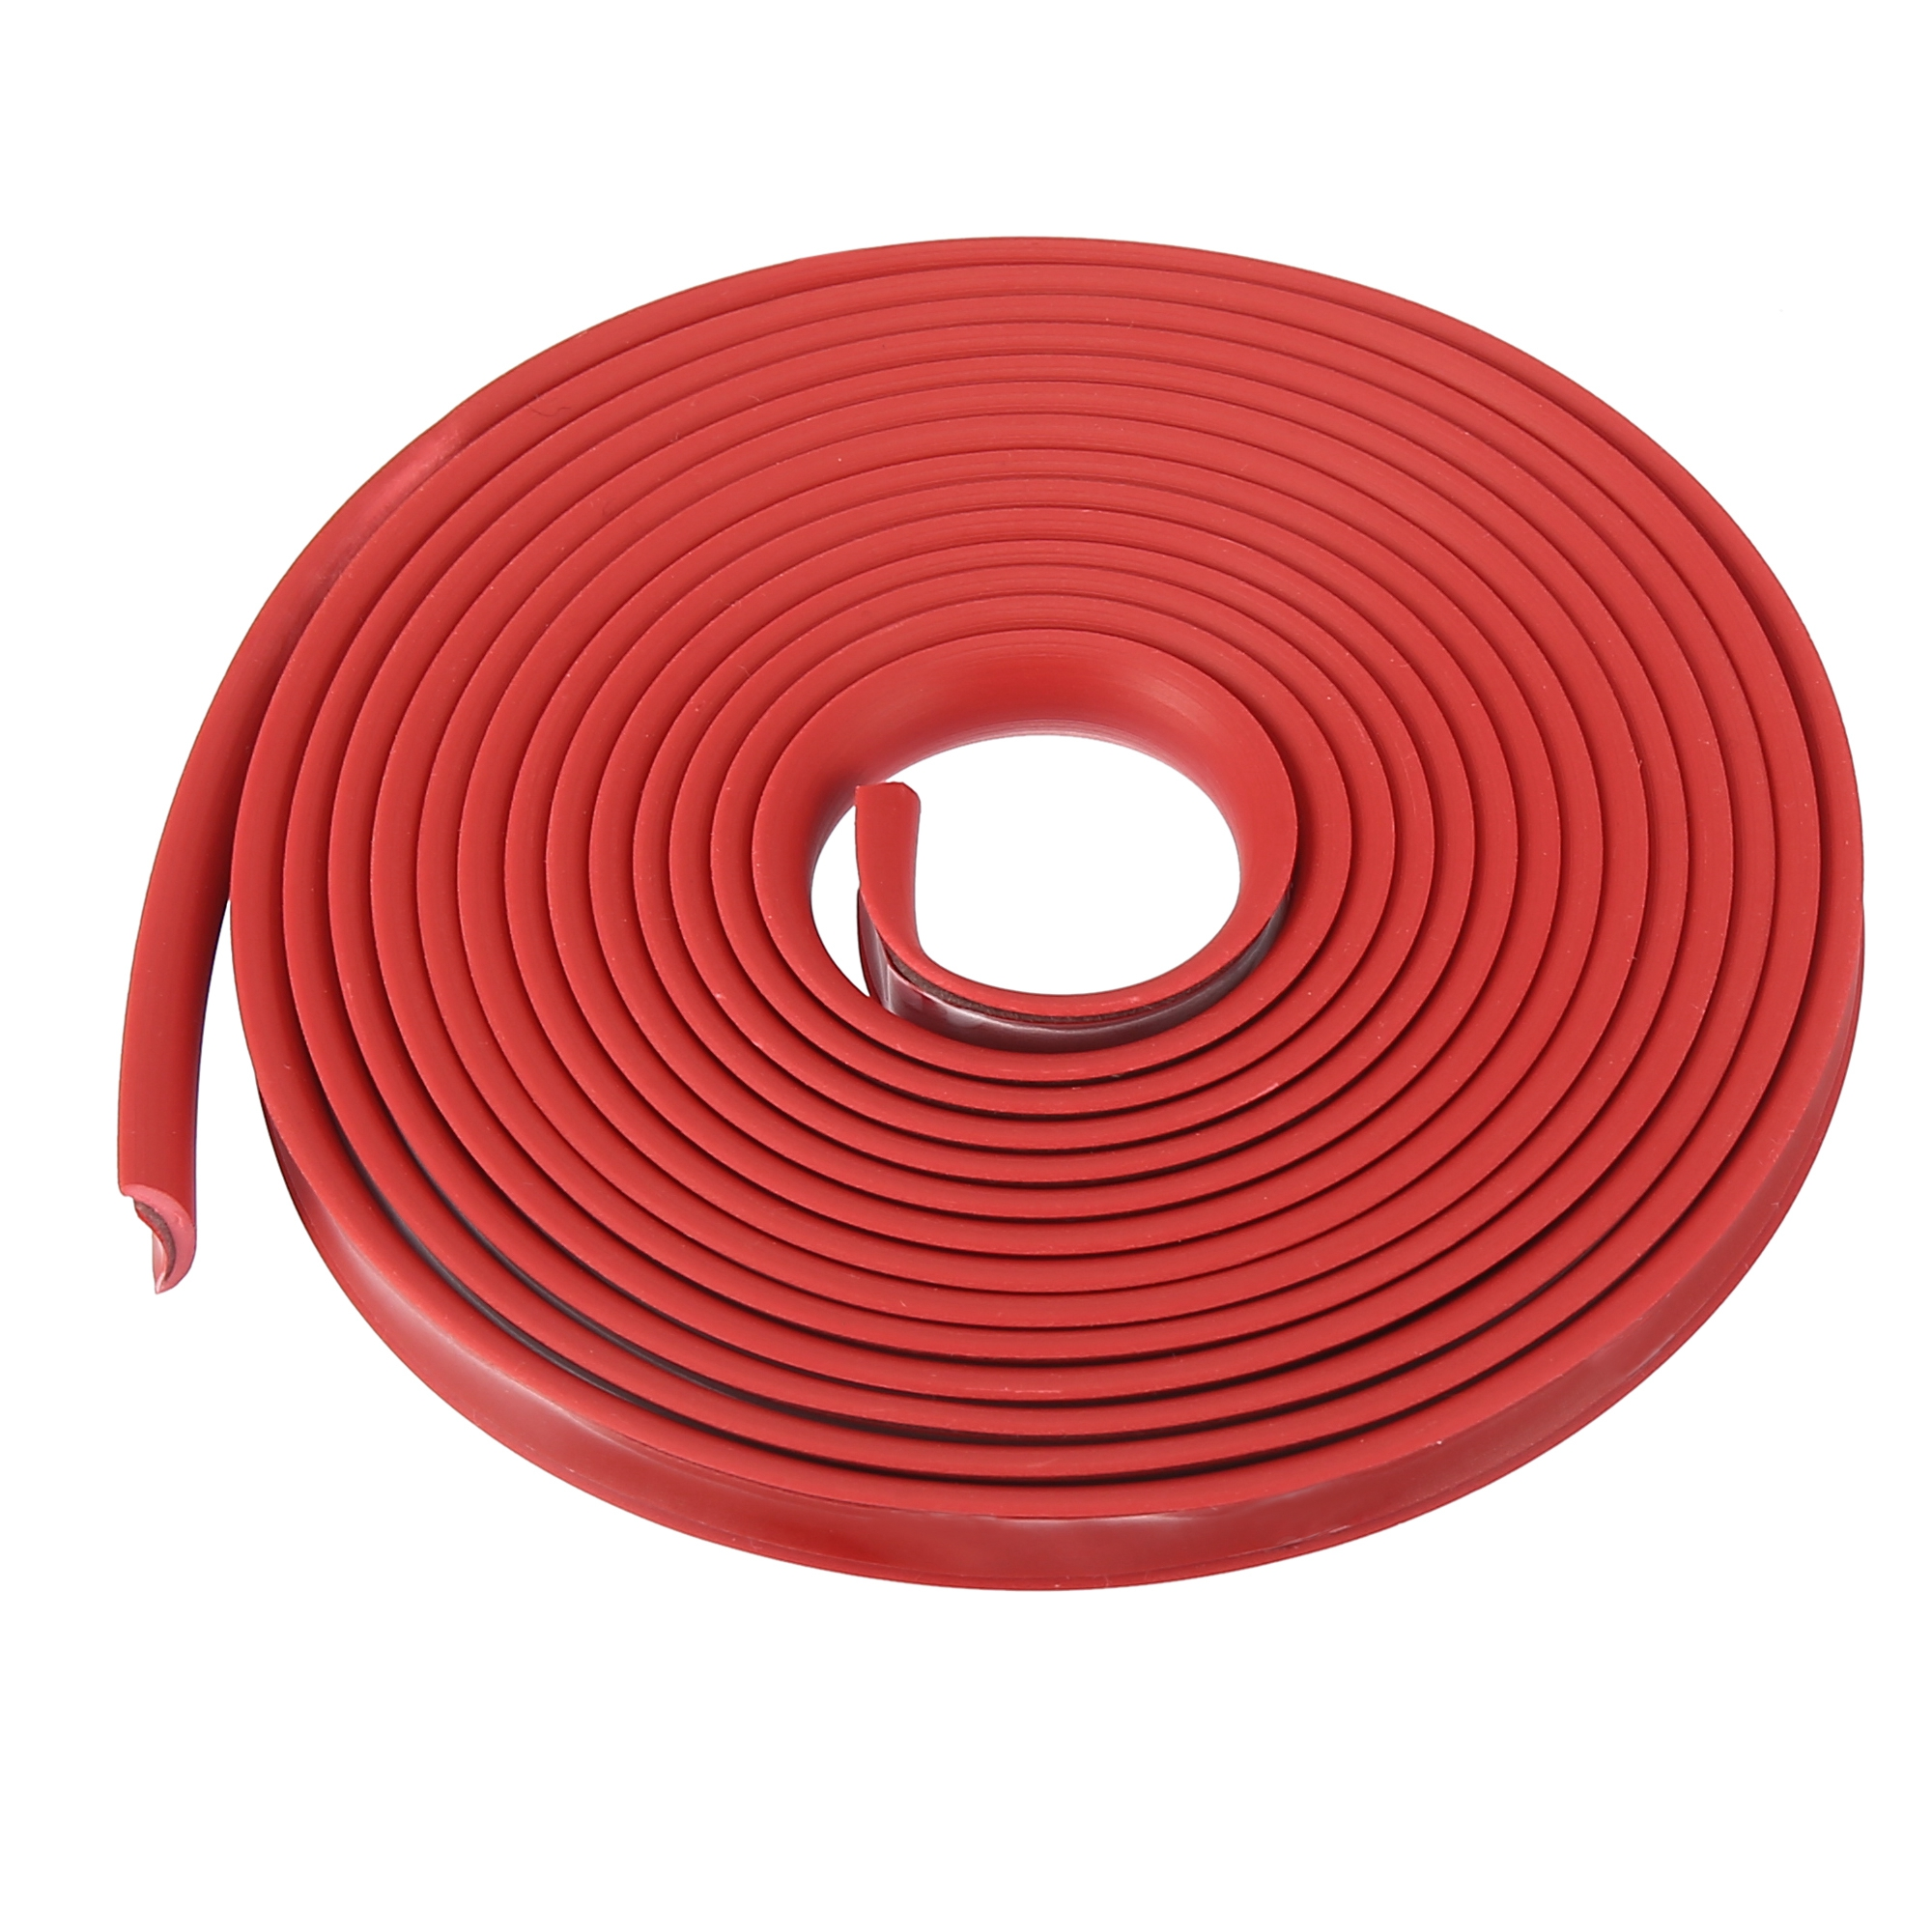 Car Red Grille Exterior Decoration Moulding Trim Strip 2 Meters